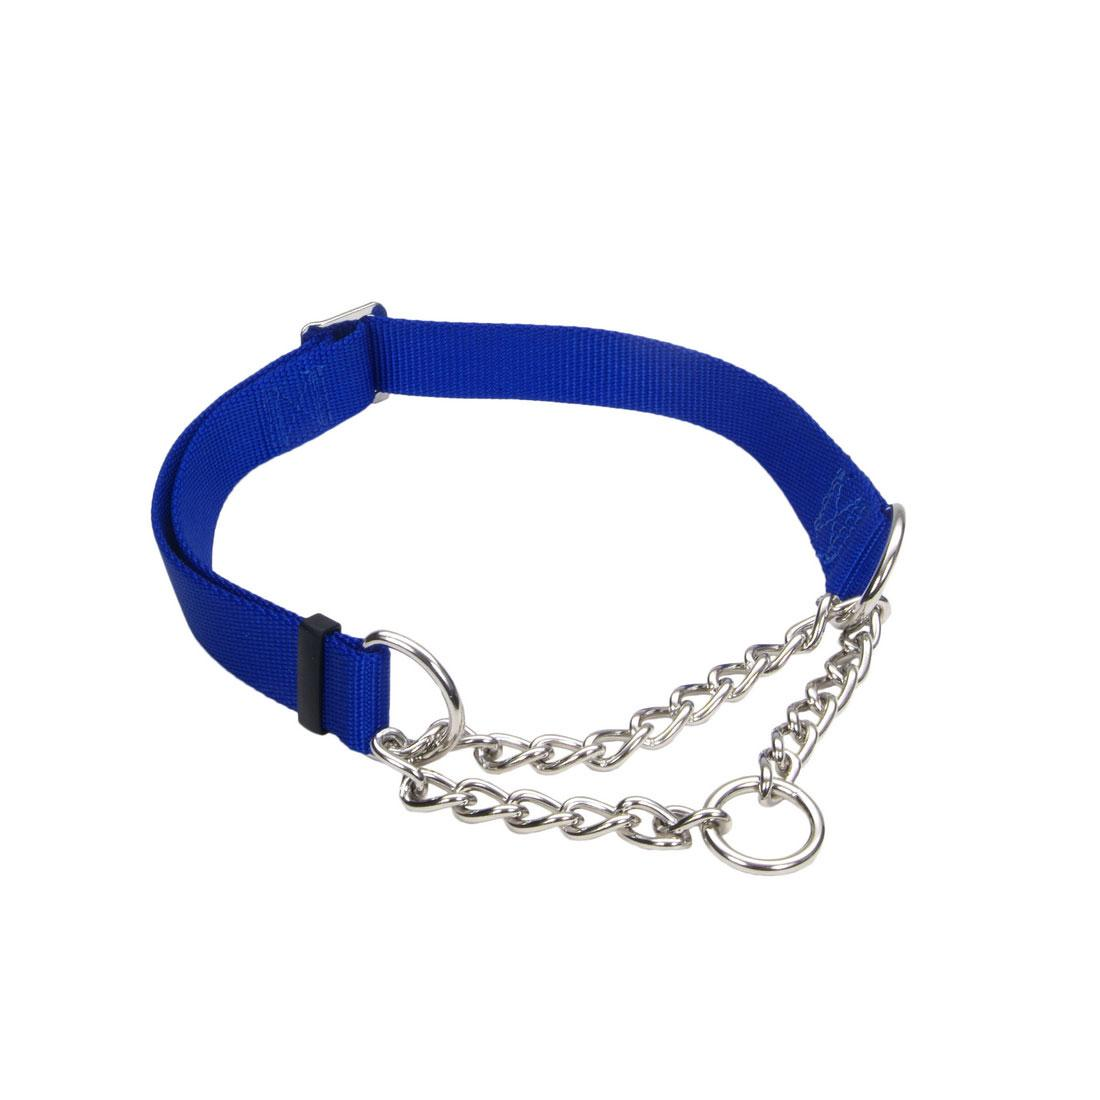 Coastal Adjustable Check Training Collar for Dogs, Blue, 5/8-in x 10-14-in